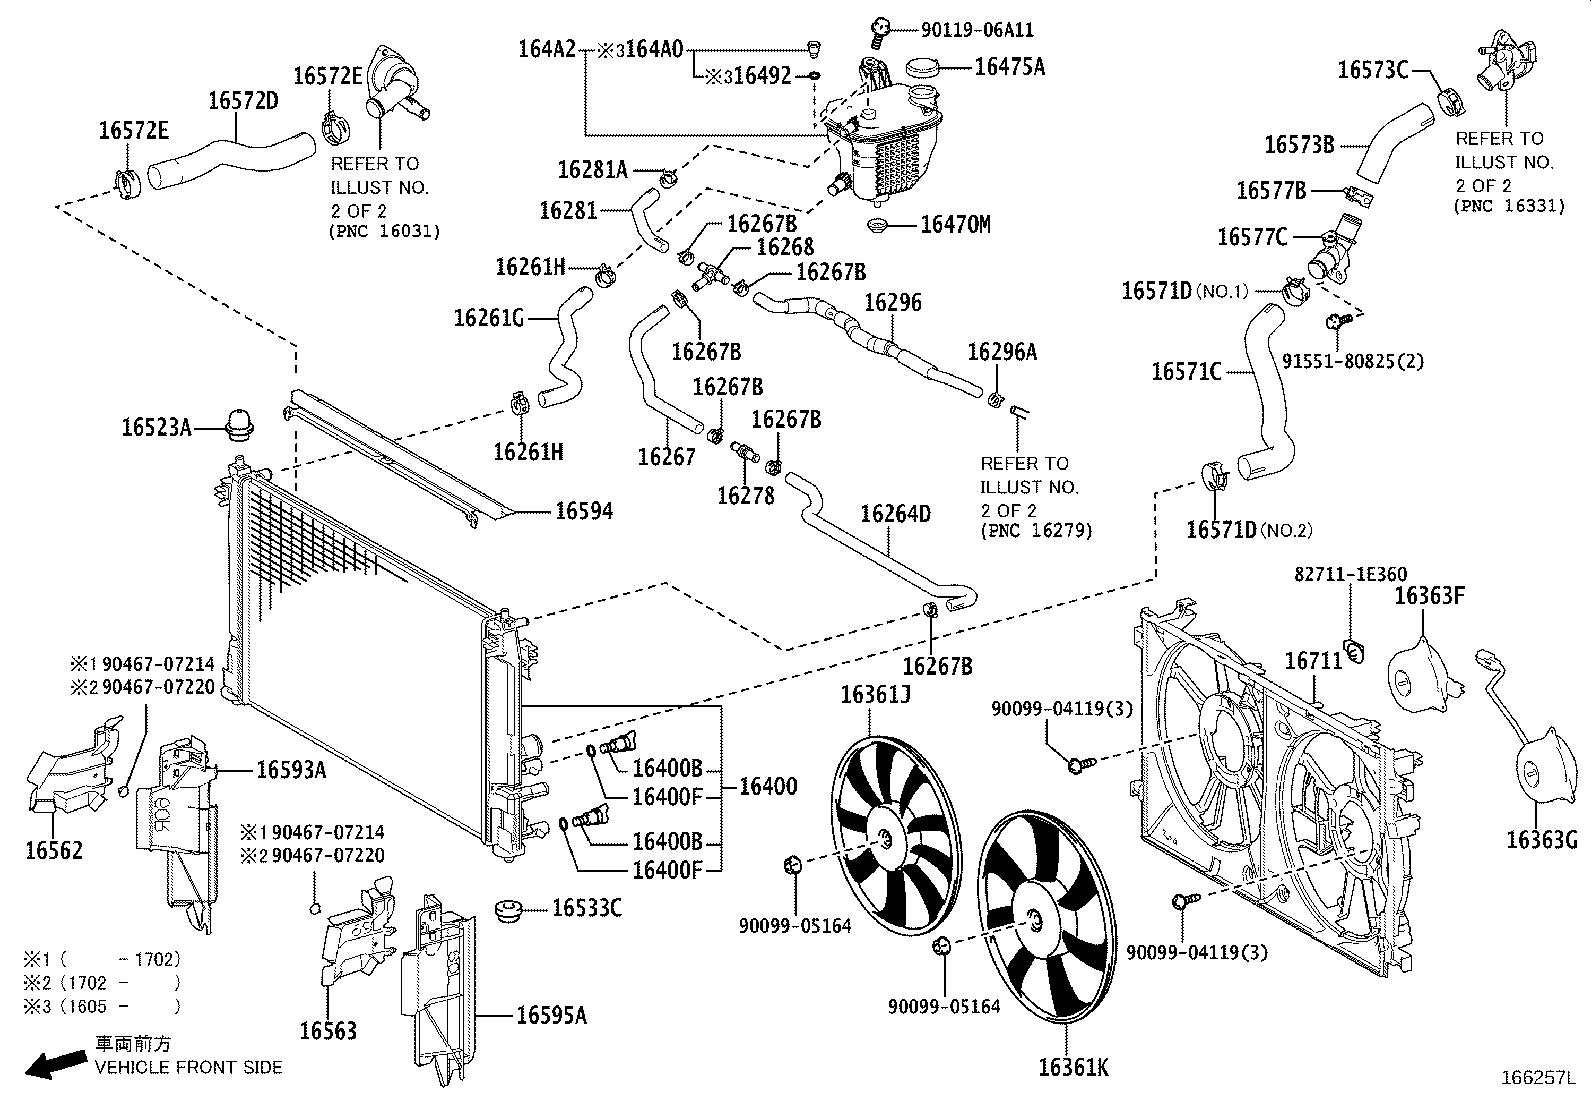 Toyota Prius Water Inlet Sub Assembly With Thermostat